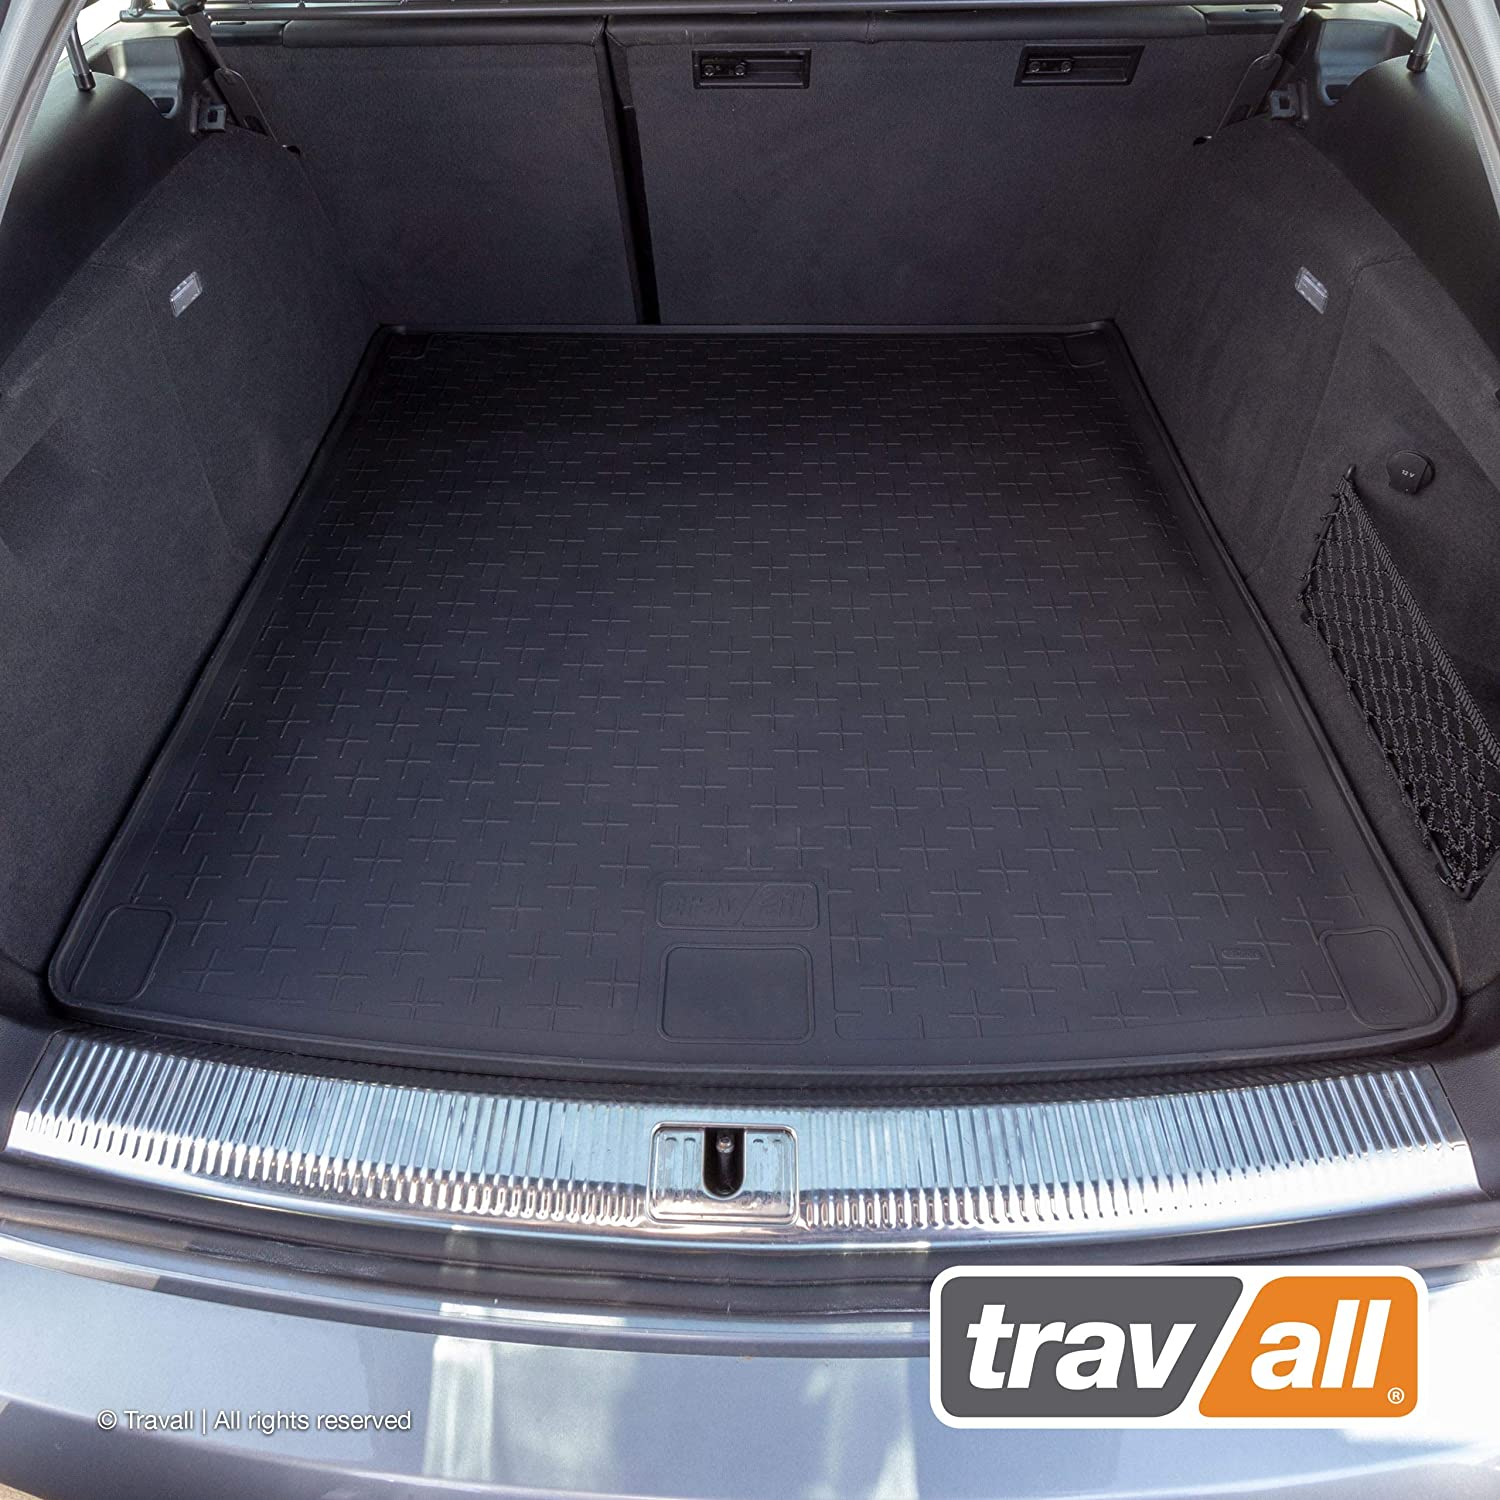 Travall Liner TBM1019 - Vehicle-Specific Rubber Boot Mat Liner